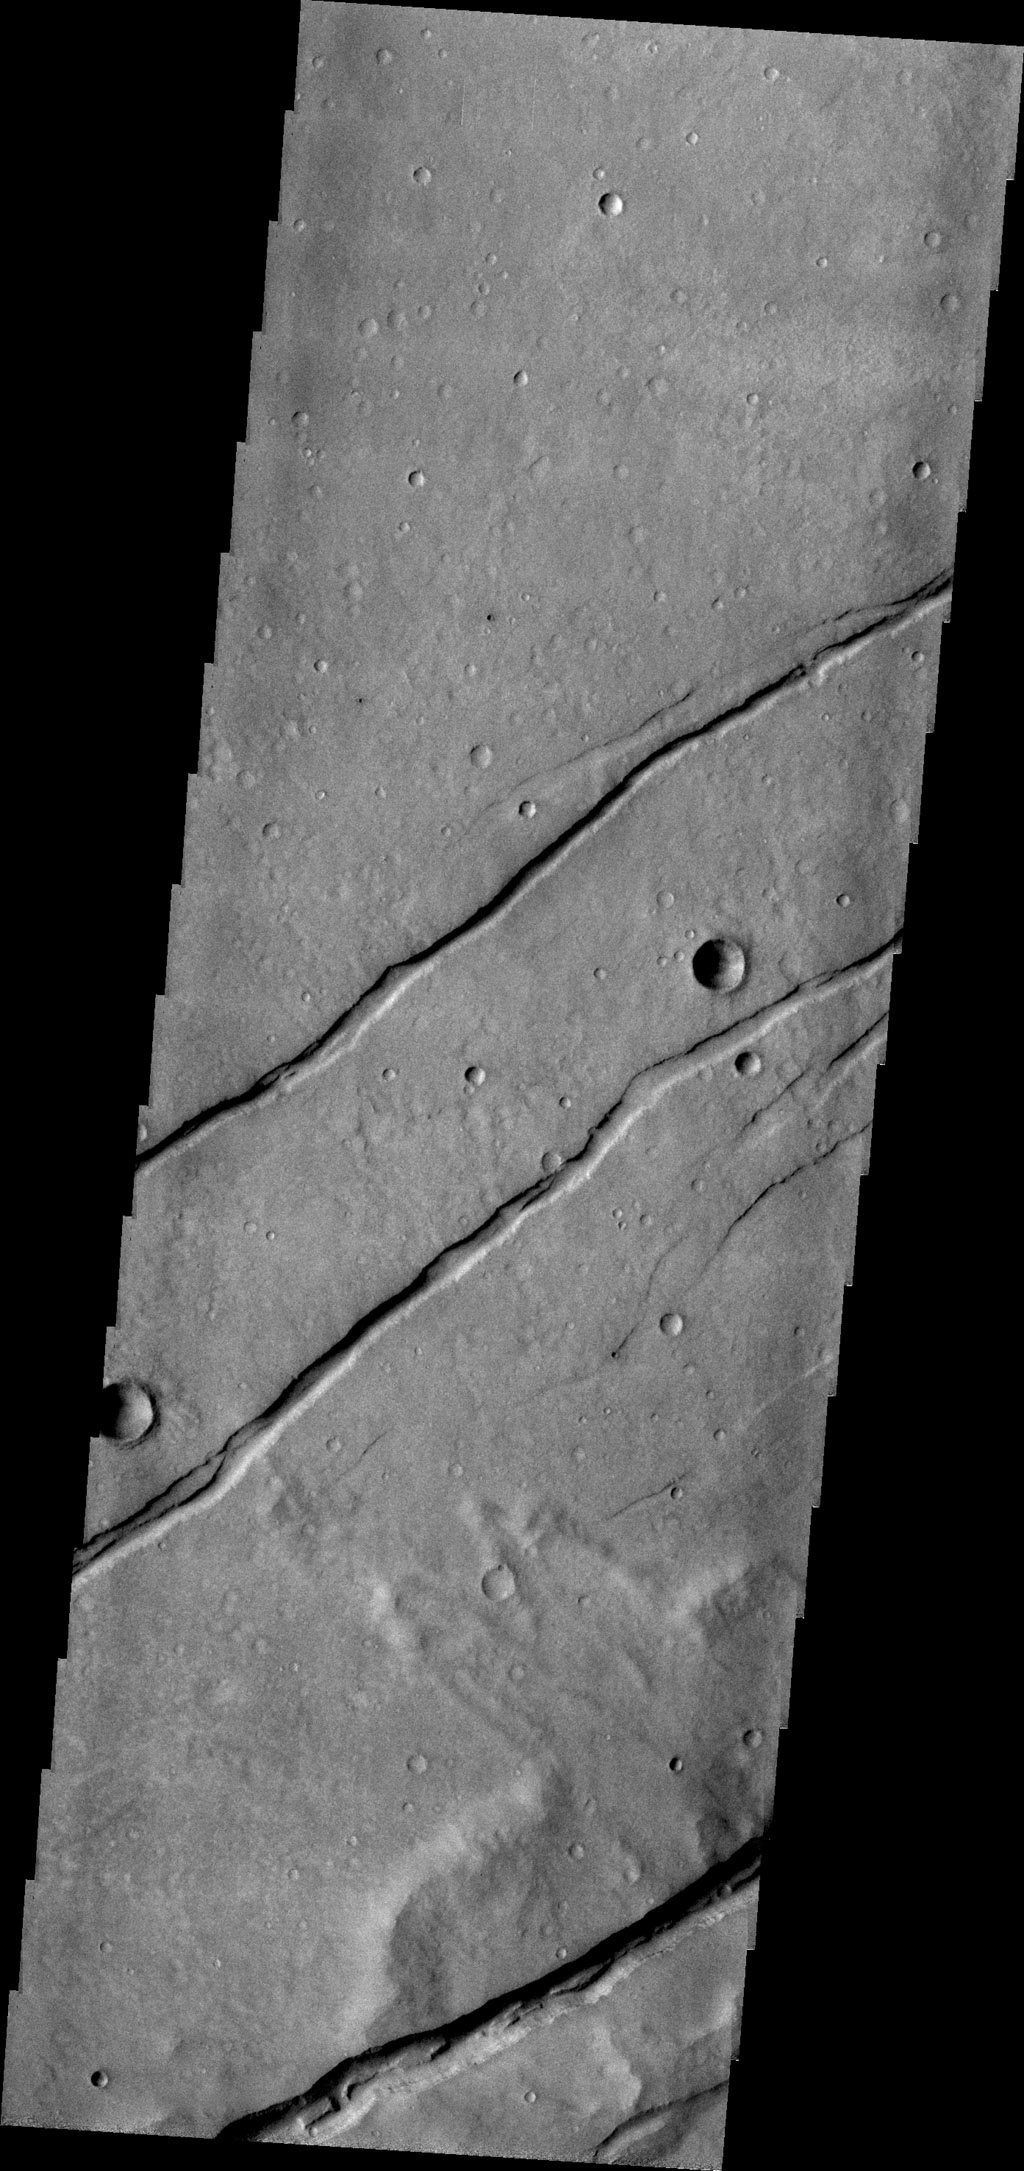 Sirenum Fossae is comprised of long, parallel fracture systems, some of which are seen in this image from NASA's 2001 Mars Odyssey spacecraft.